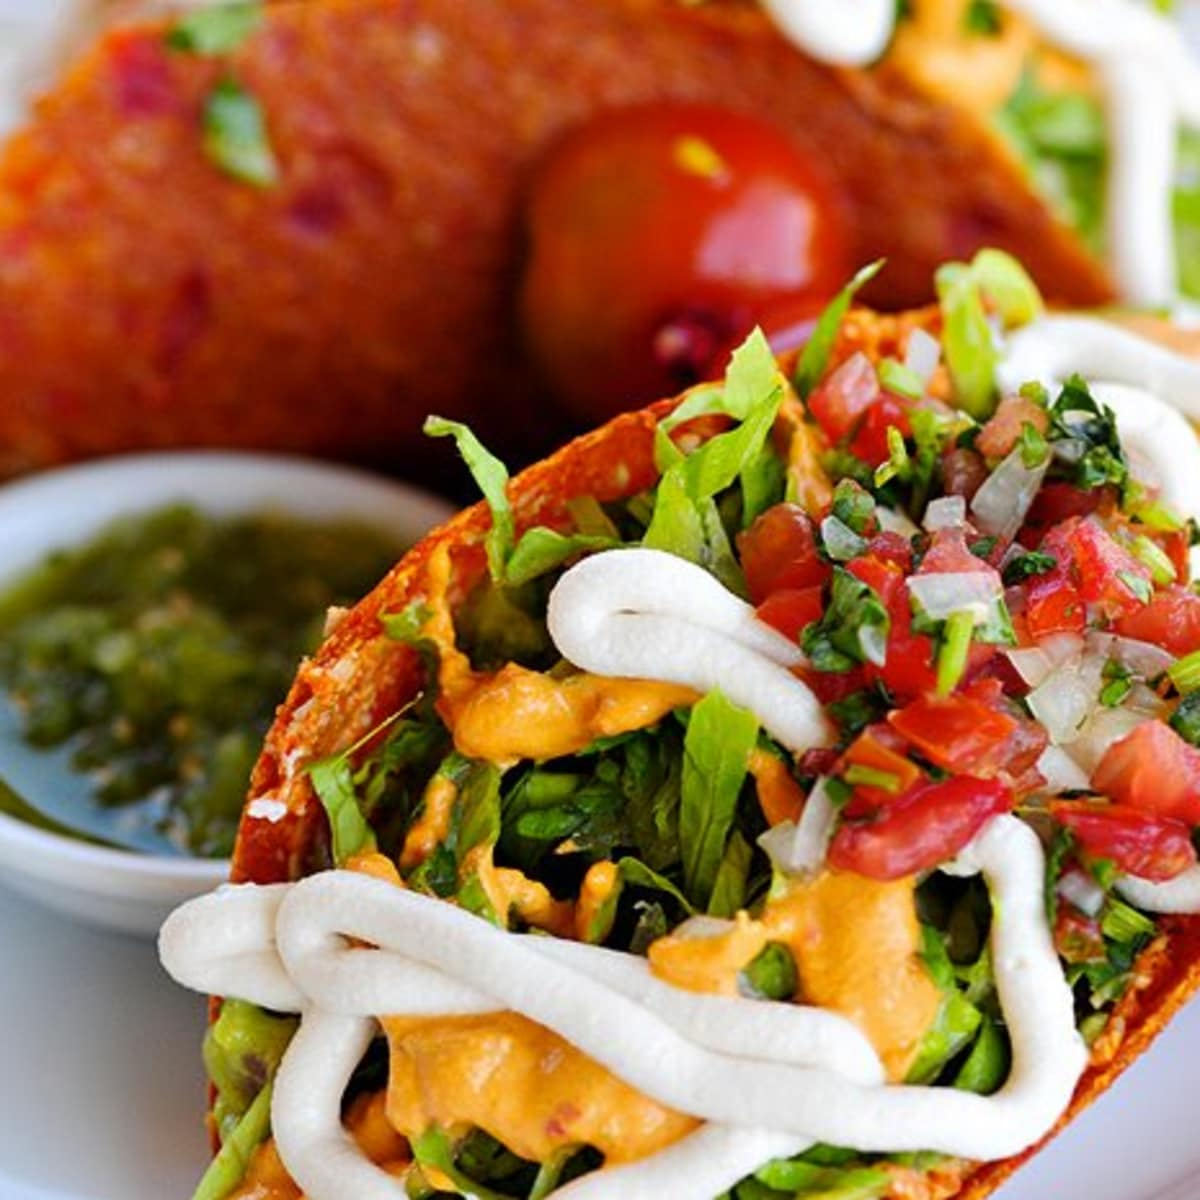 Rawkos Tacos at Be Raw Food and Juice in Dallas